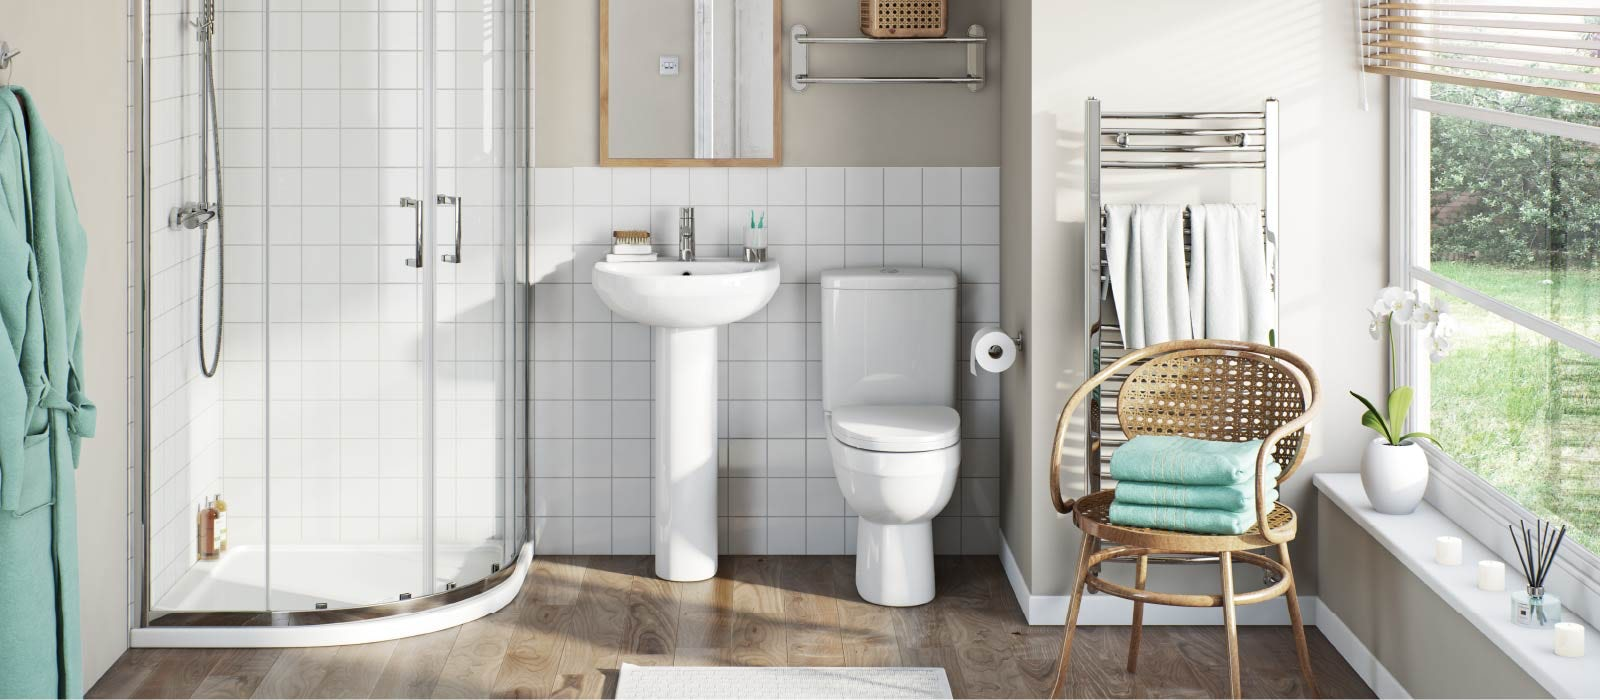 How to turn your bathroom into a home hairdressing salon